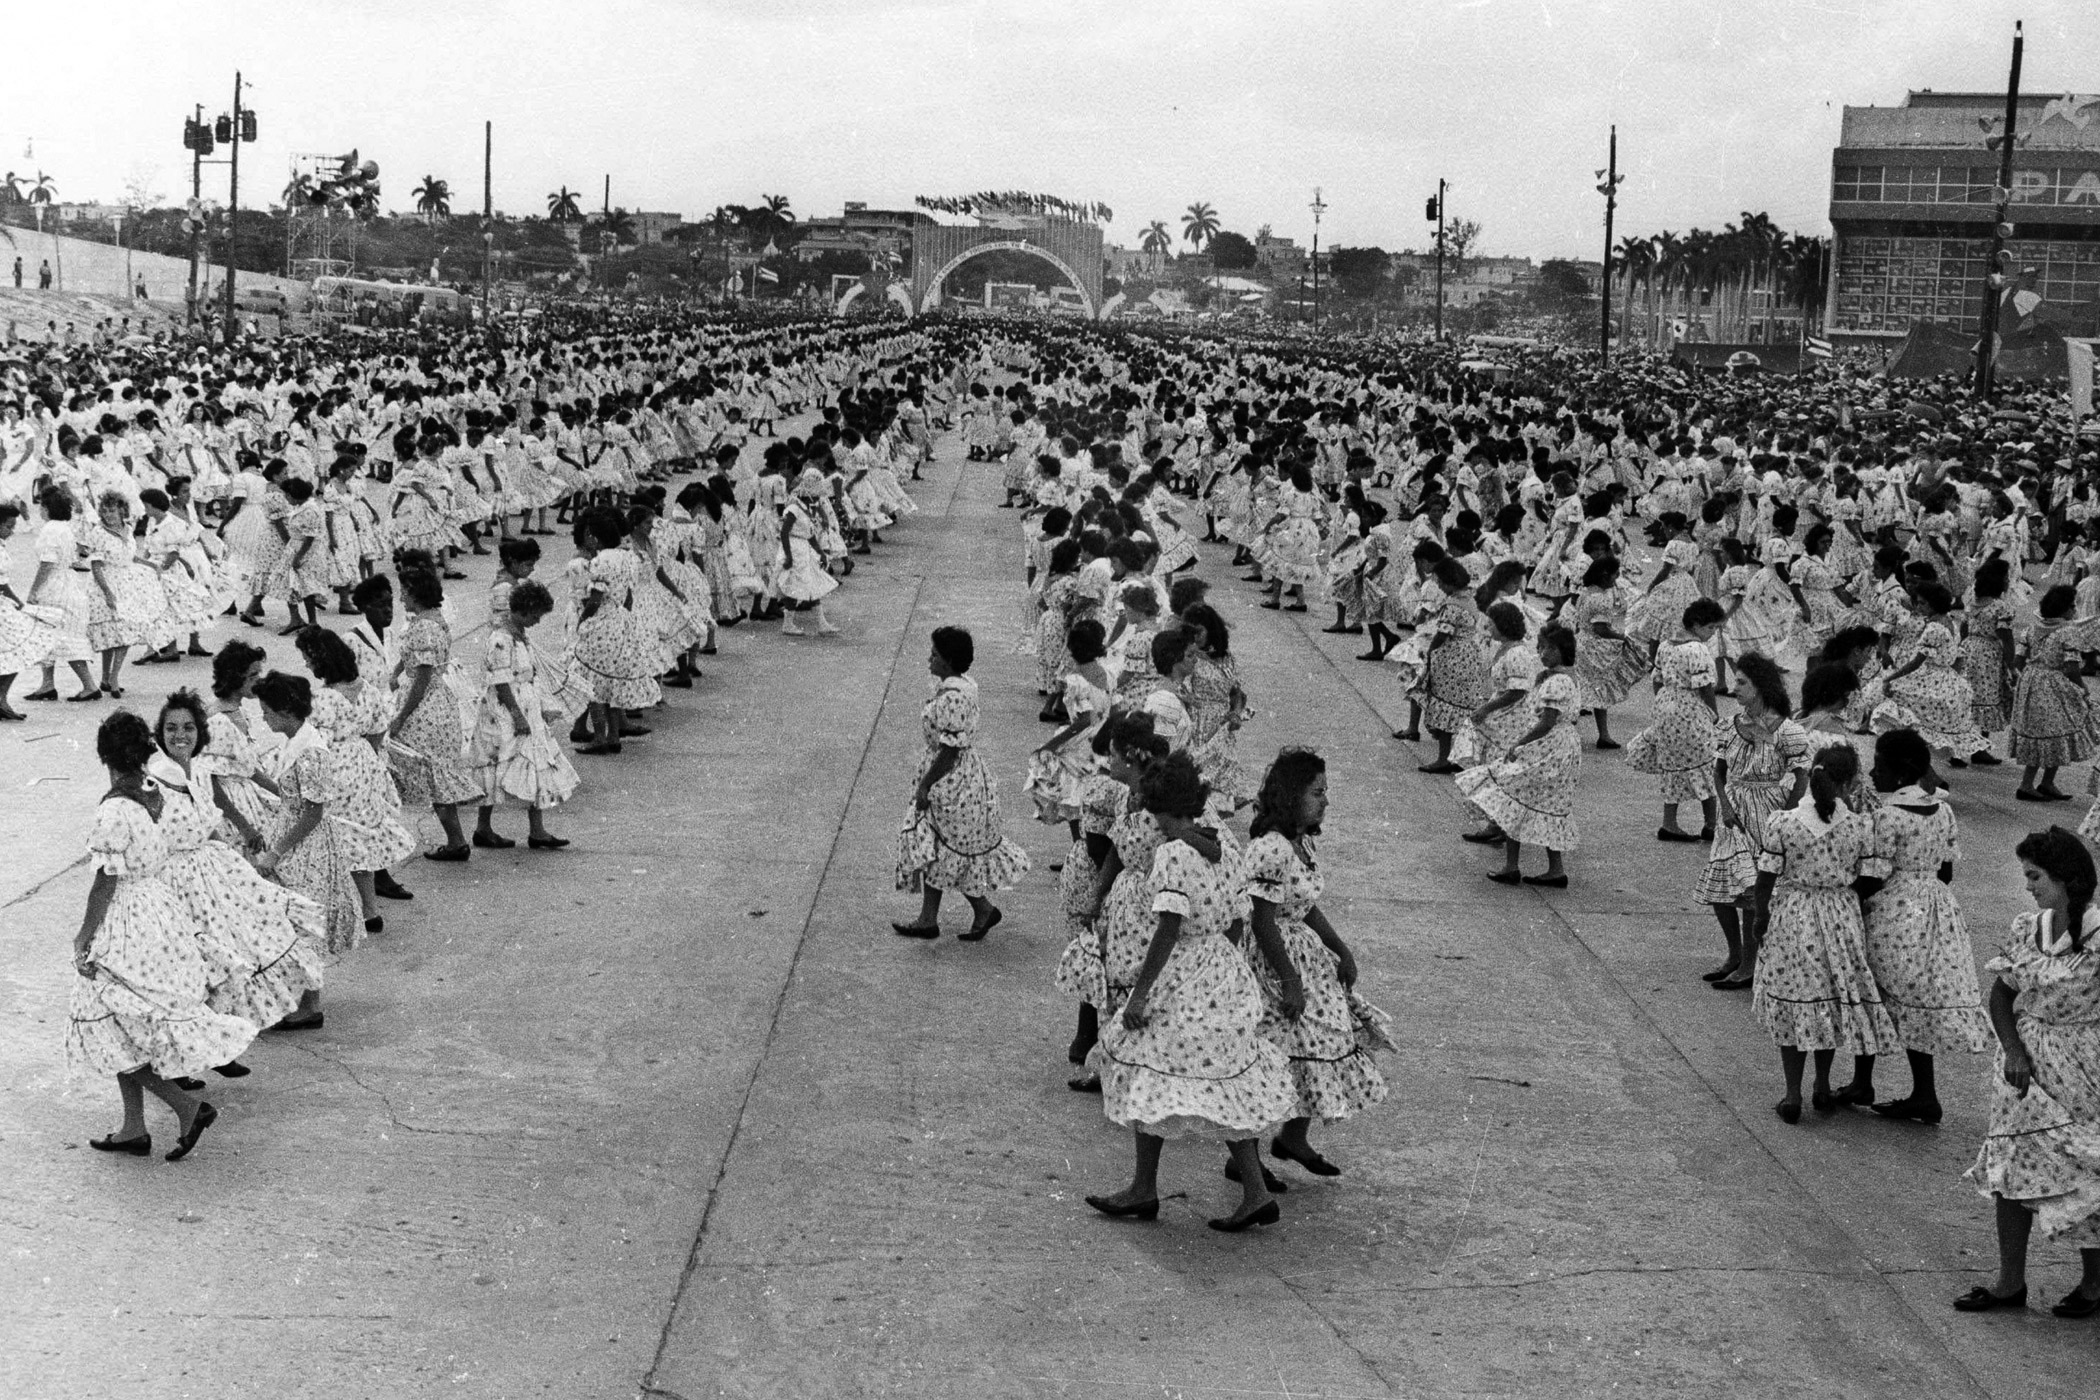 Young Cubans perform a dance during the International Workers' Day celebrations in the Plaza de la Revolucion in Havana on May 1, 1961.